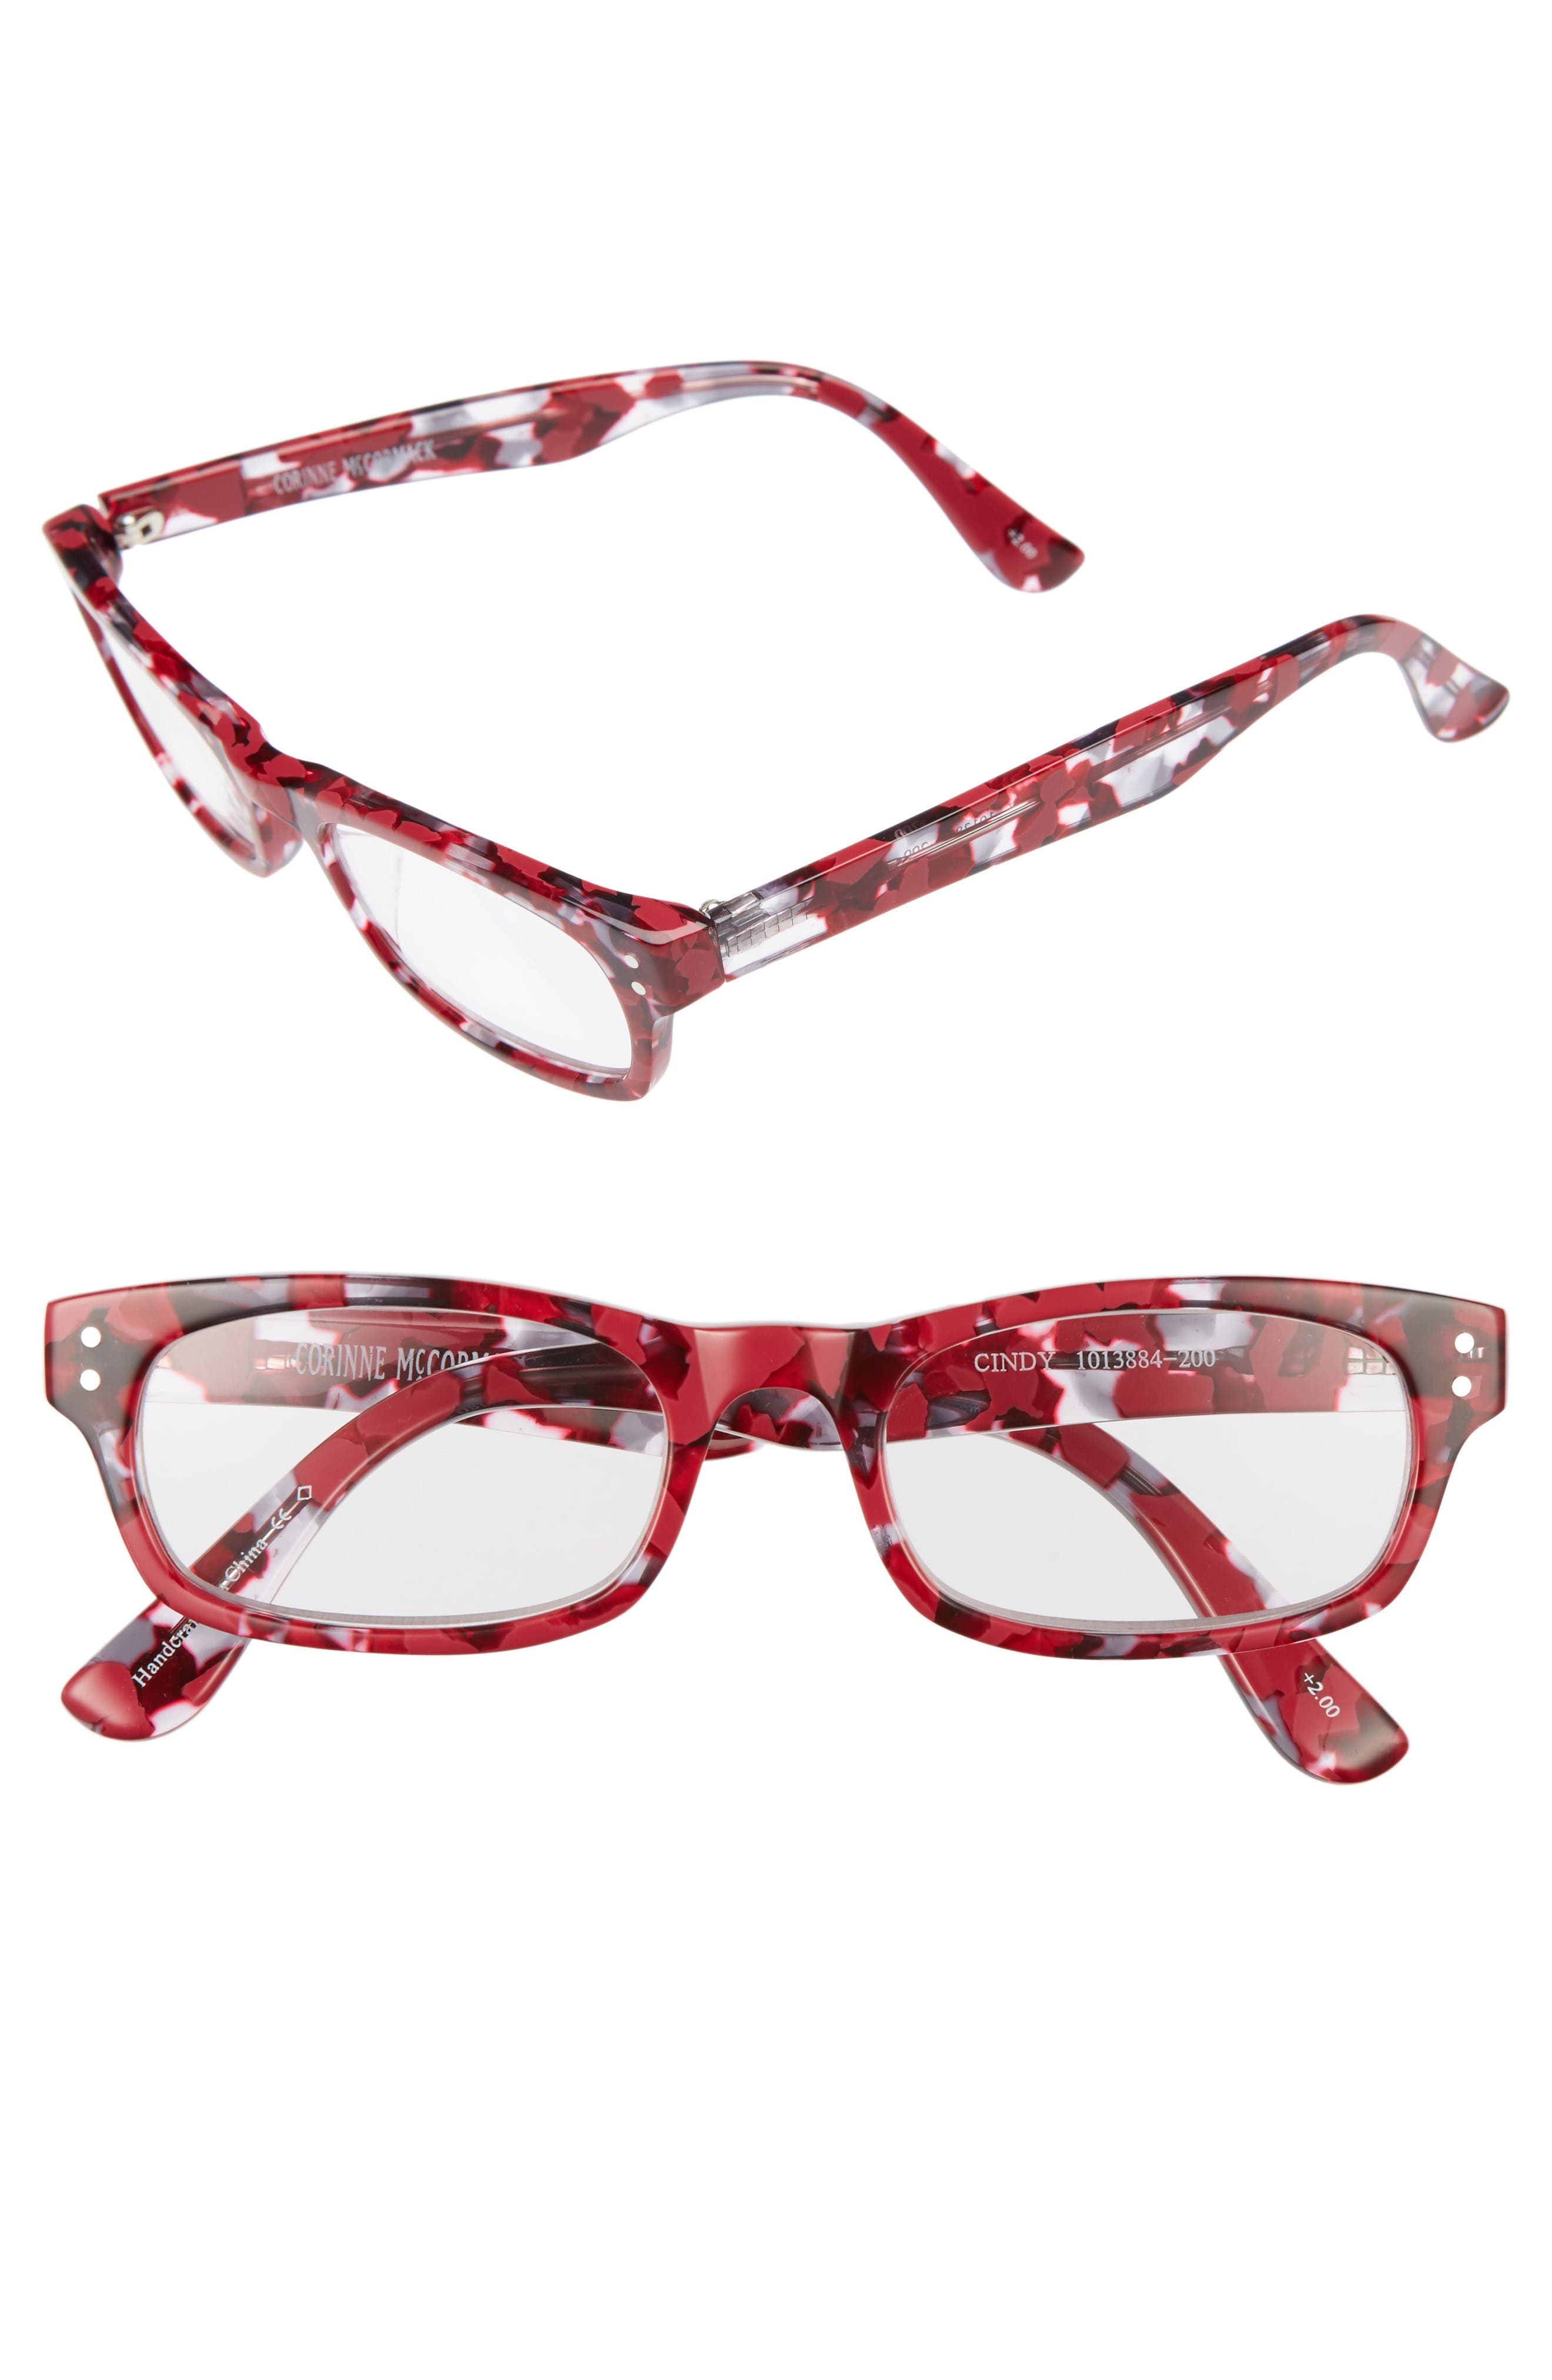 Corinne McCormack Cindy 50mm Reading Glasses